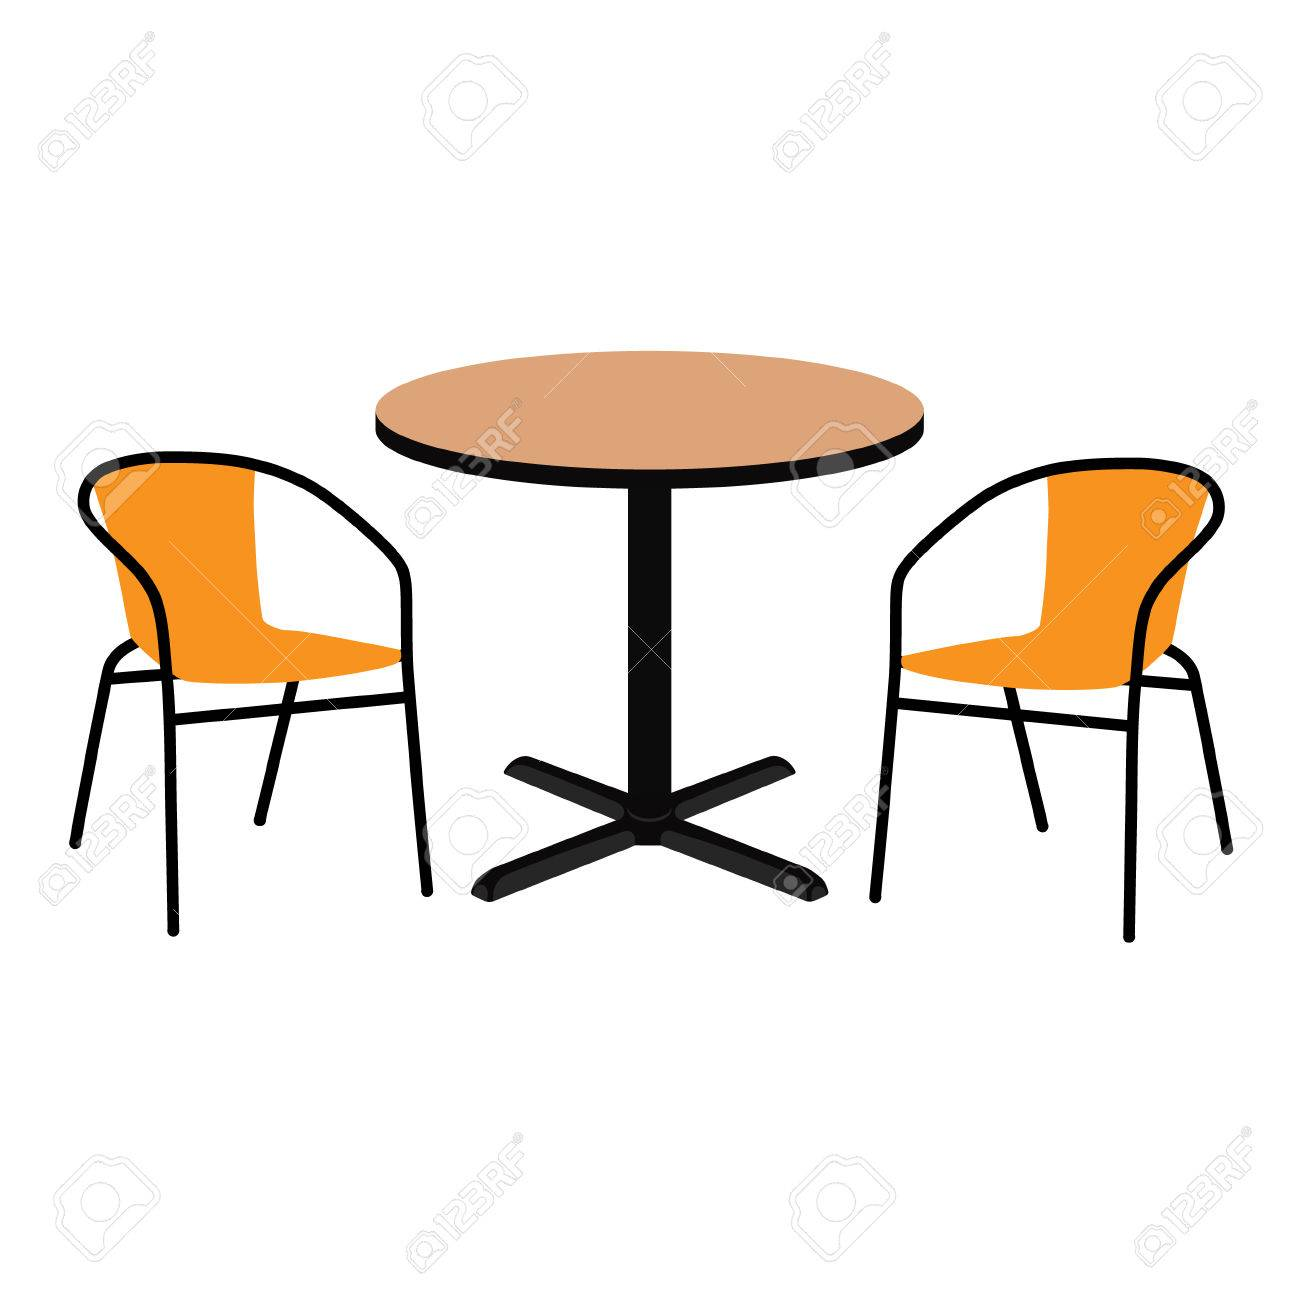 Raster Illustration Wooden Outdoor Table And Two Chairs Round